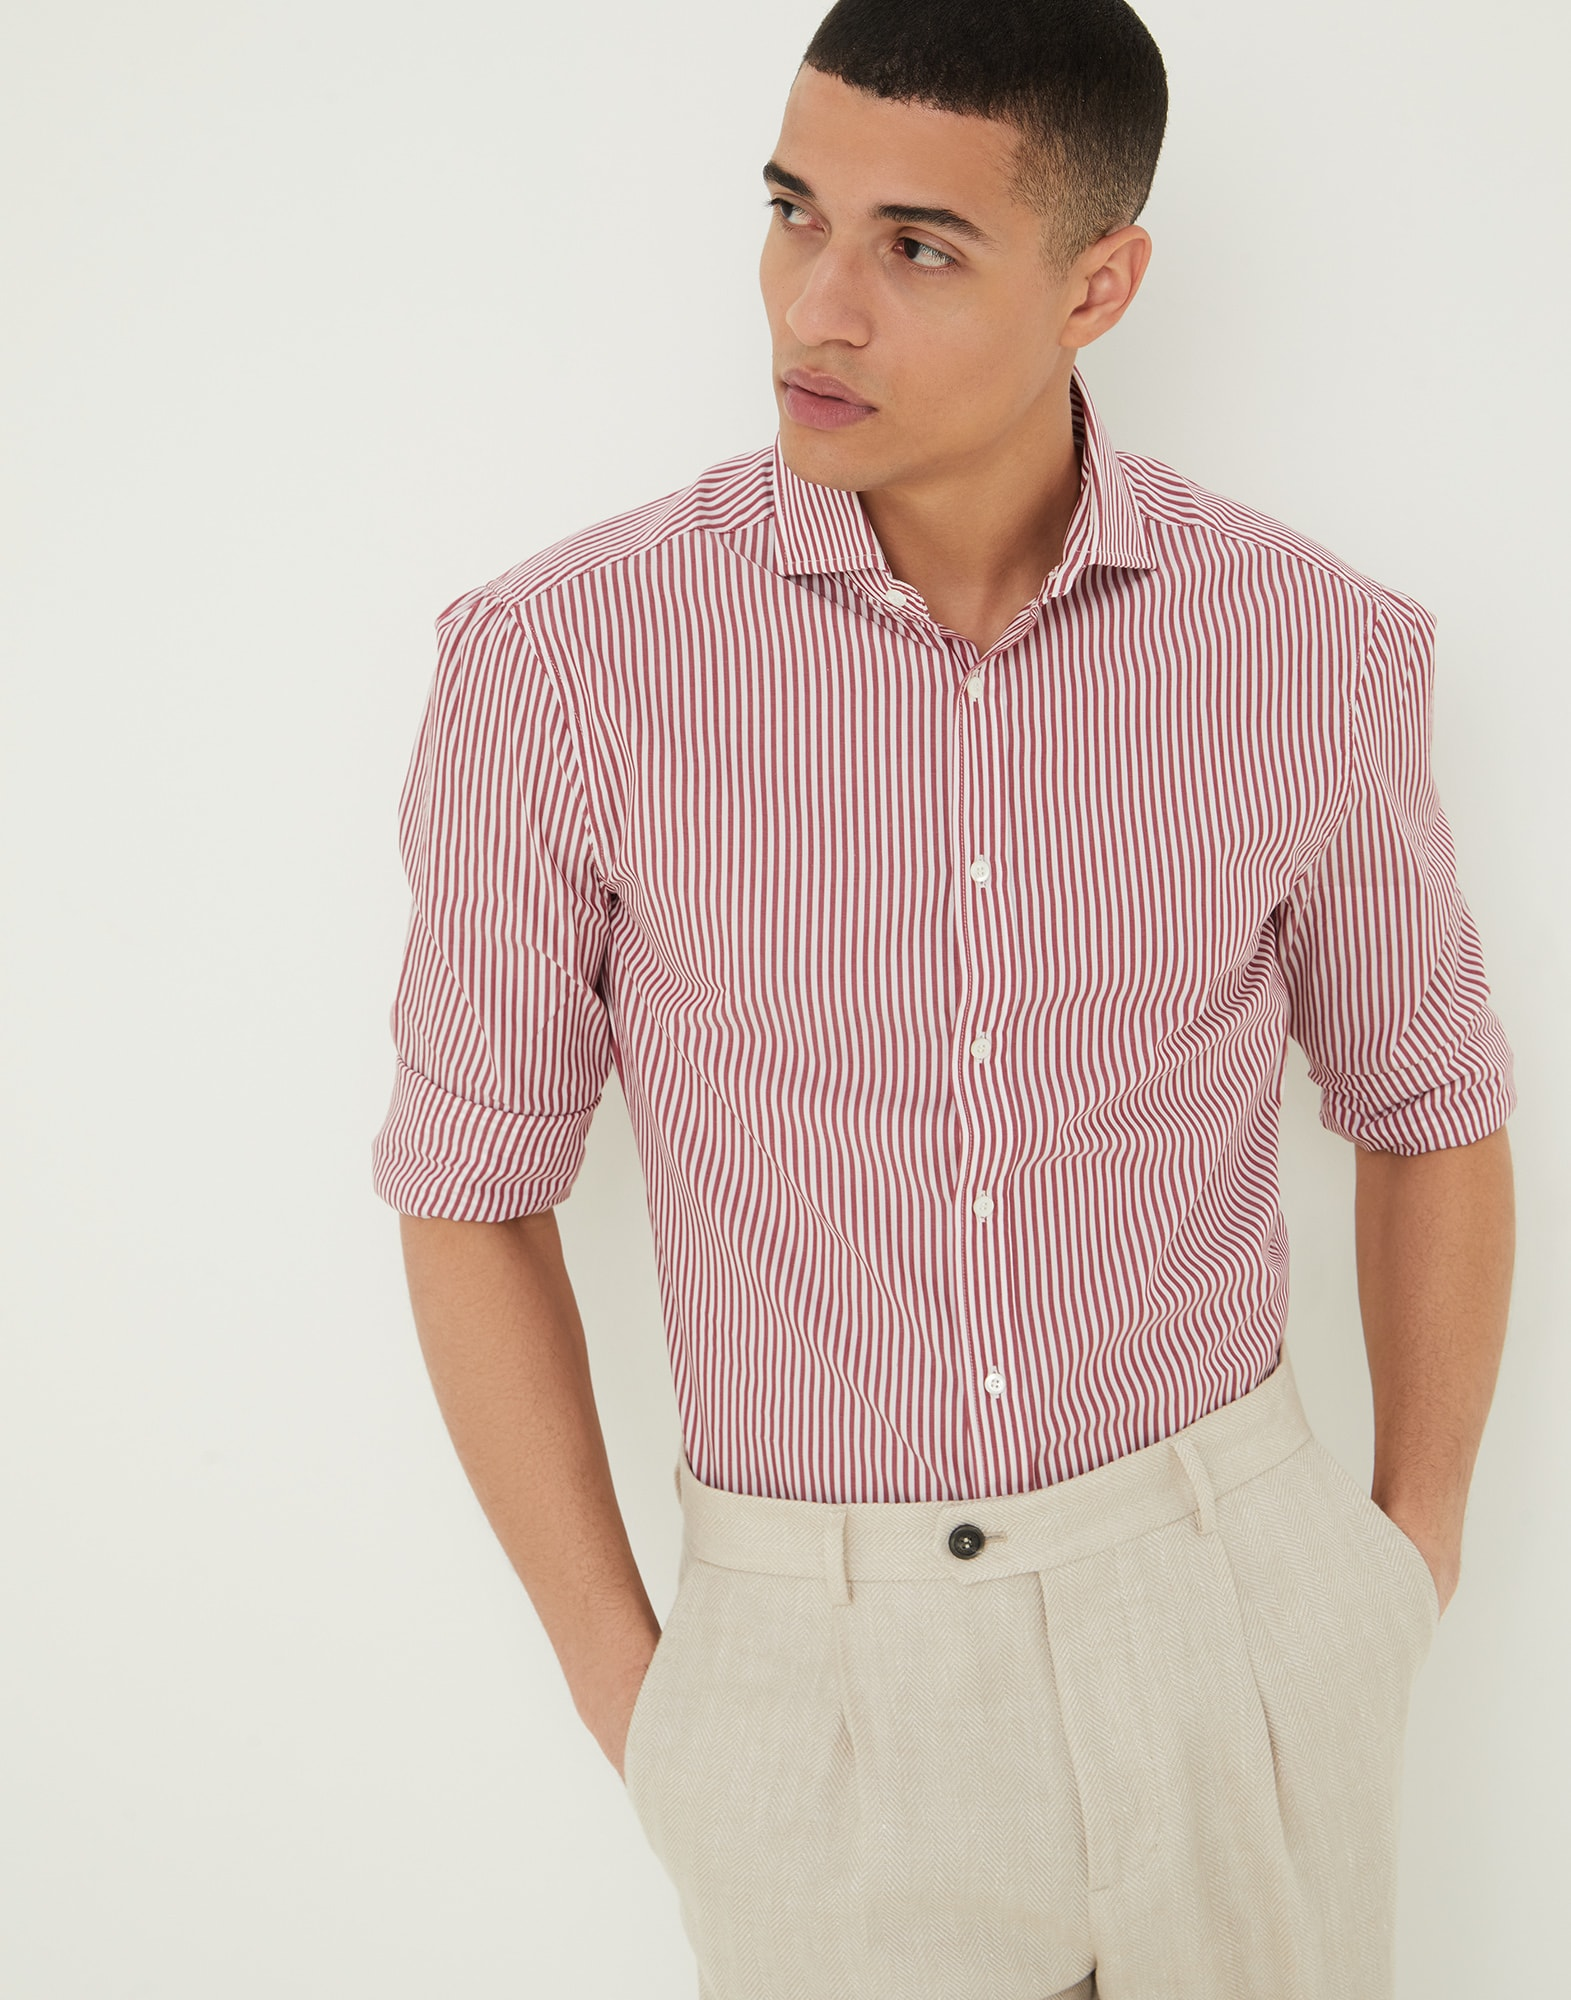 French Collar Shirt - Editorial